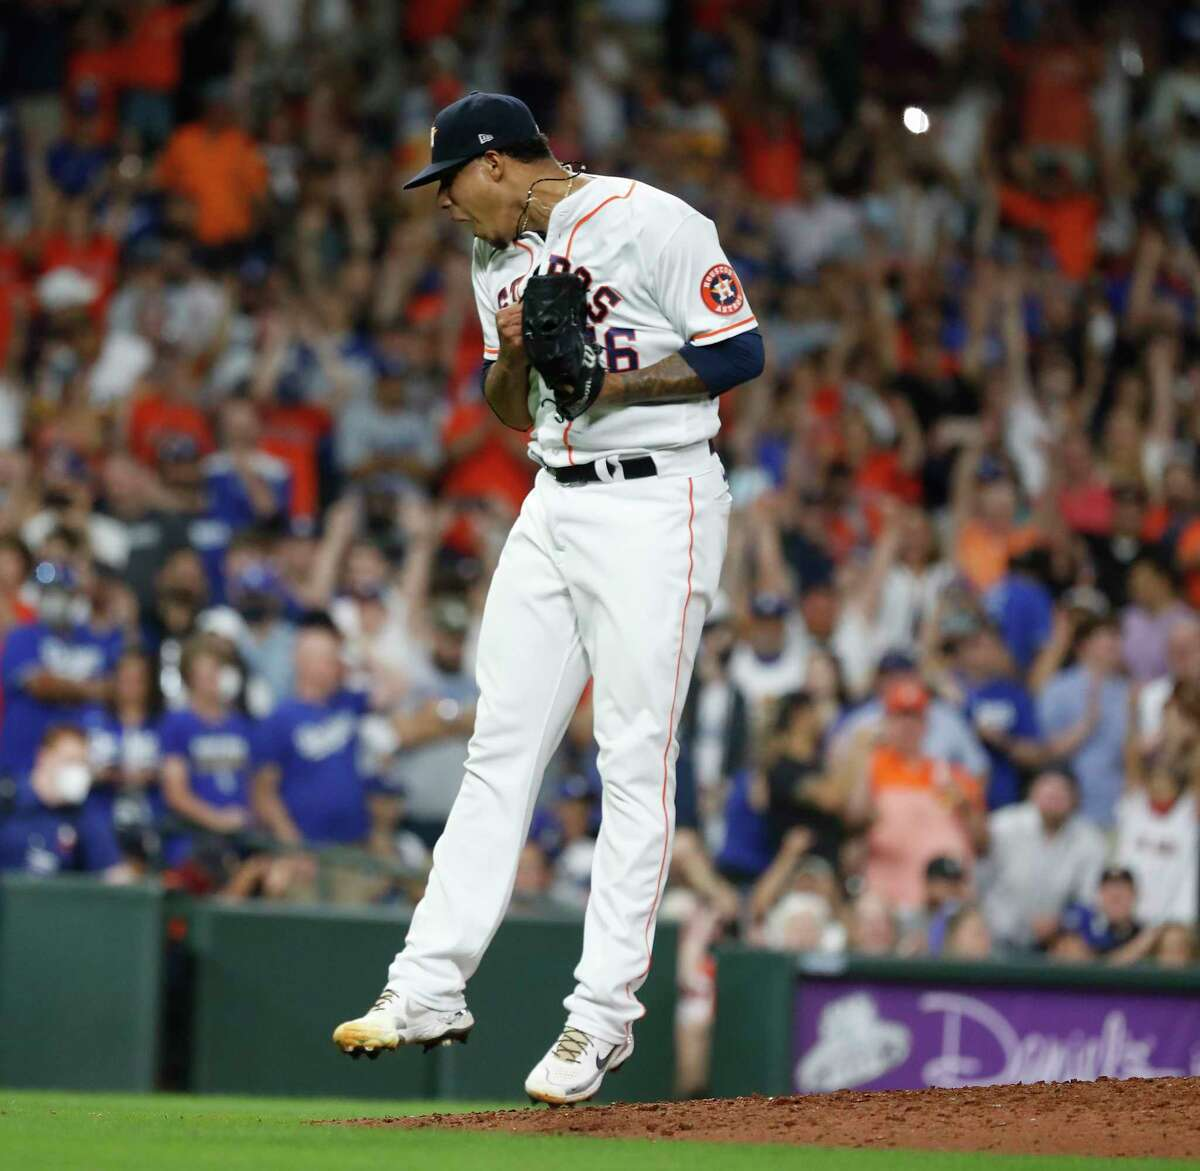 Houston Astros relief pitcher Bryan Abreu reacts after striking out Los Angeles Dodgers Albert Pujols for the final out of an MLB baseball game at Minute Maid Park, Wednesday, May 26, 2021, in Houston. Astros won 5-2.